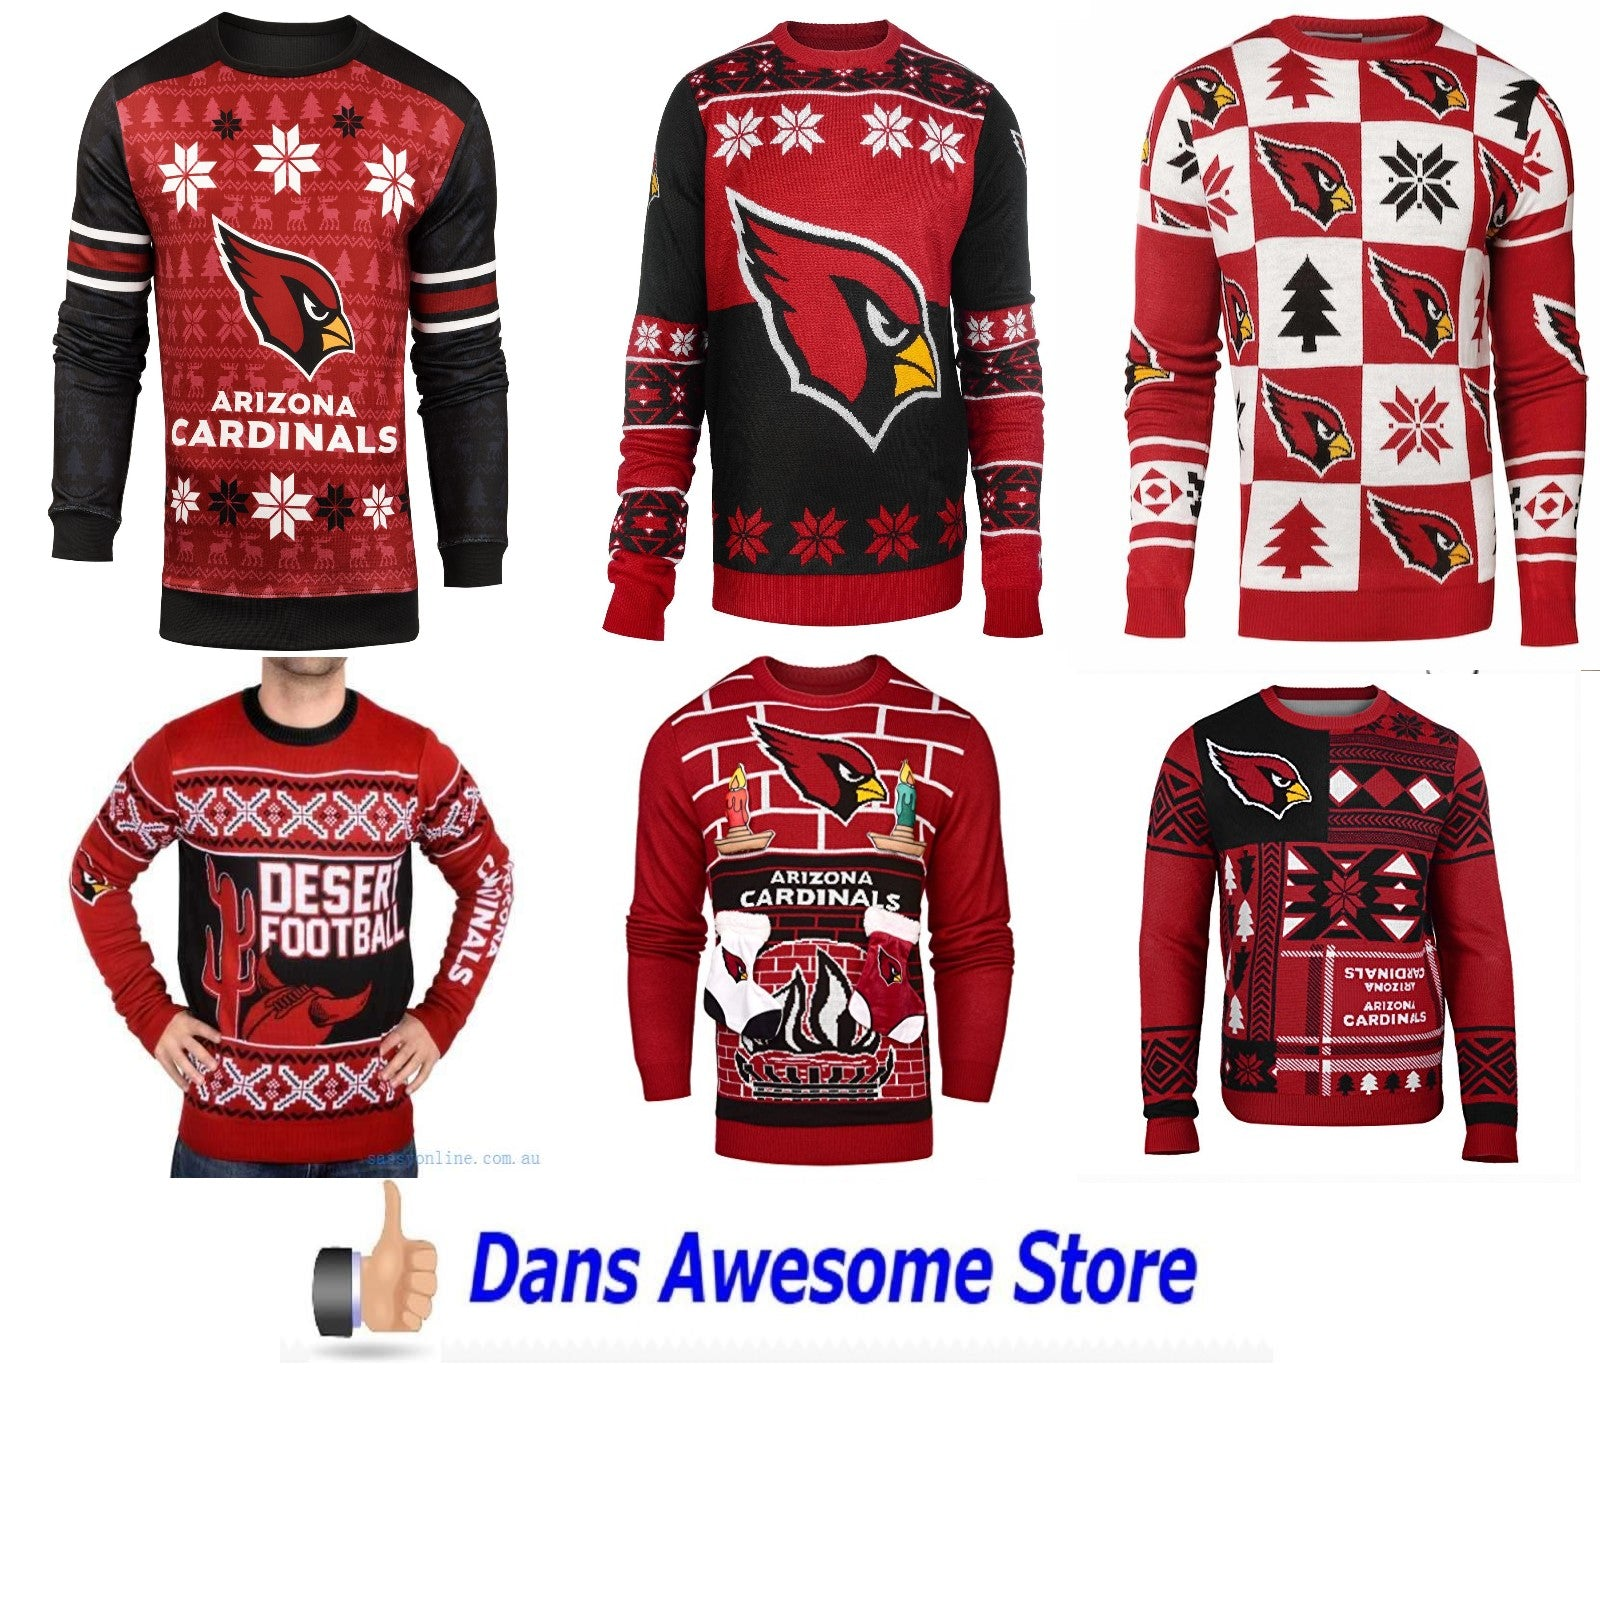 Arizona Cardinals Sweater - Dans Awesome Store